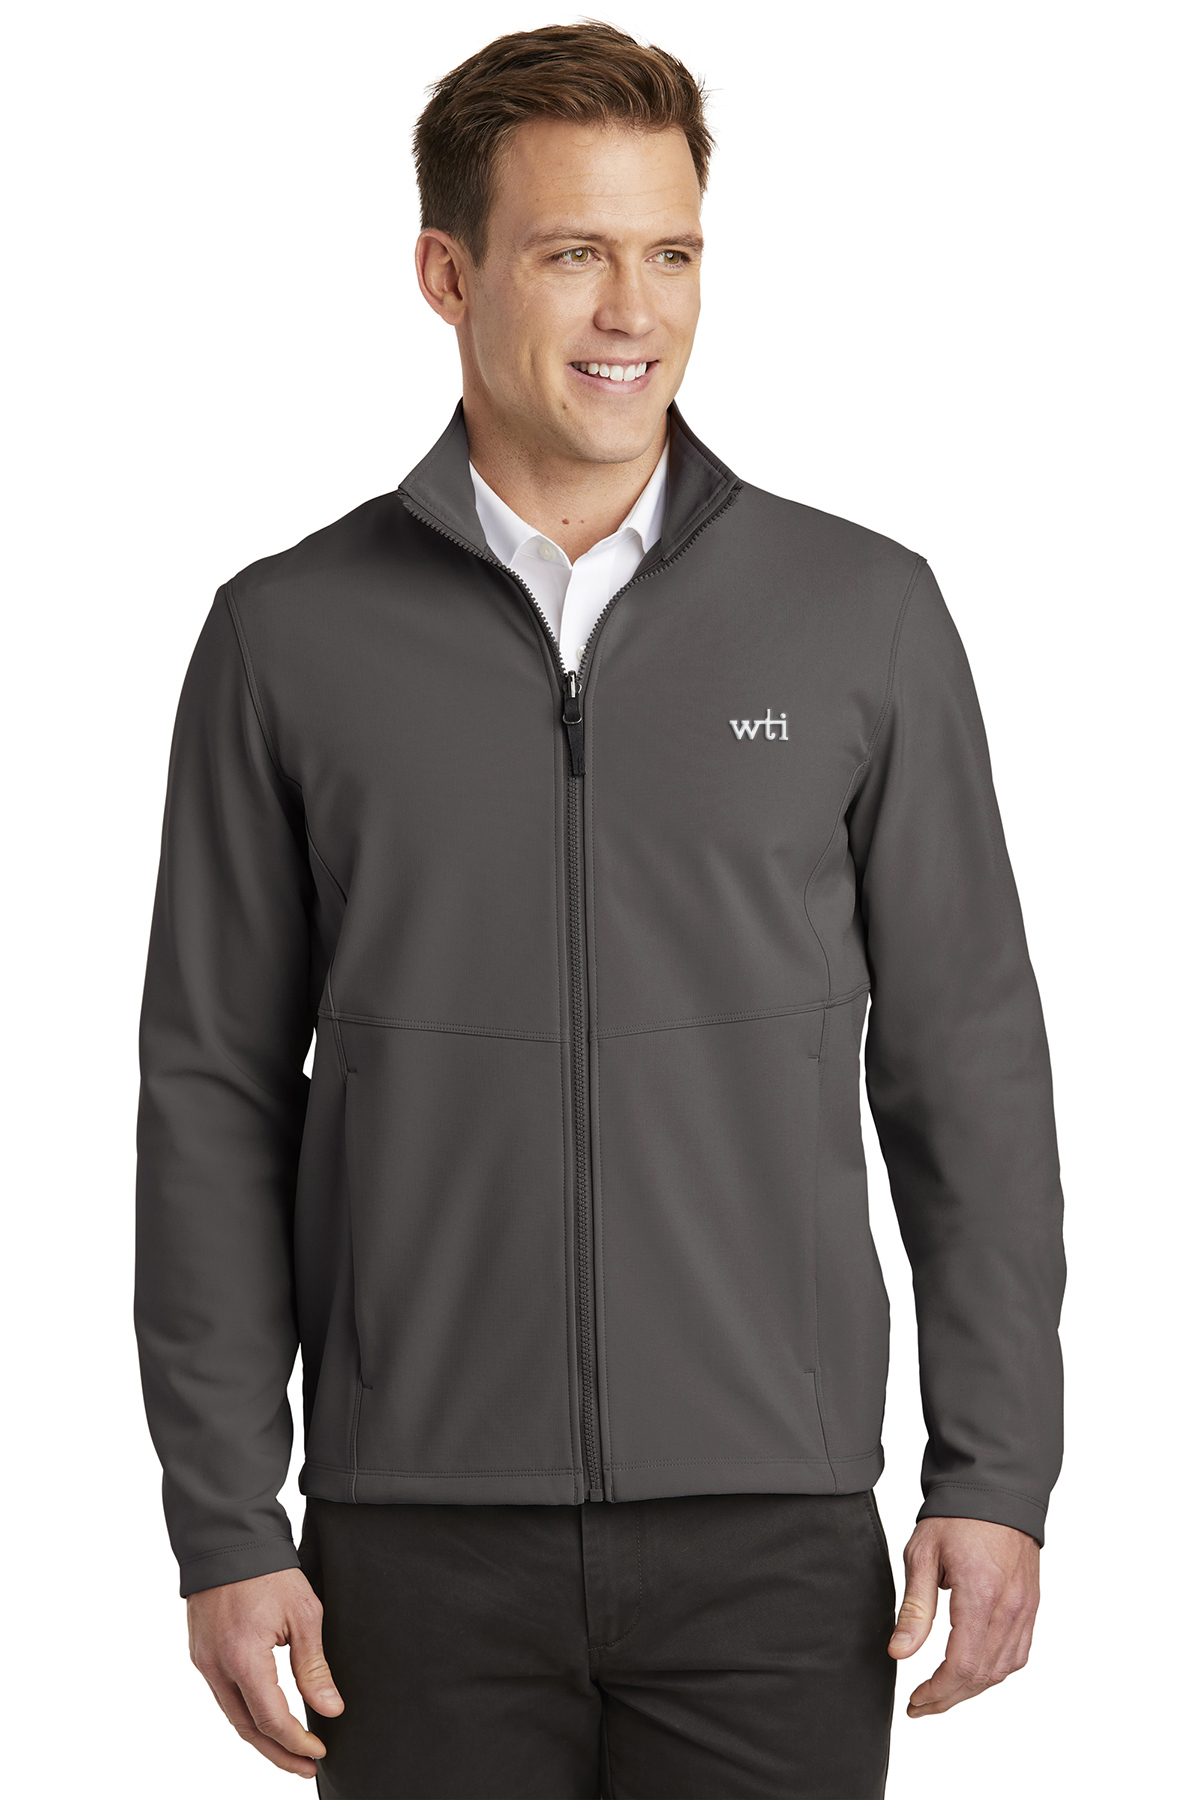 PA  Collective Soft Shell Jacket. J901. Prices Starting At $38!